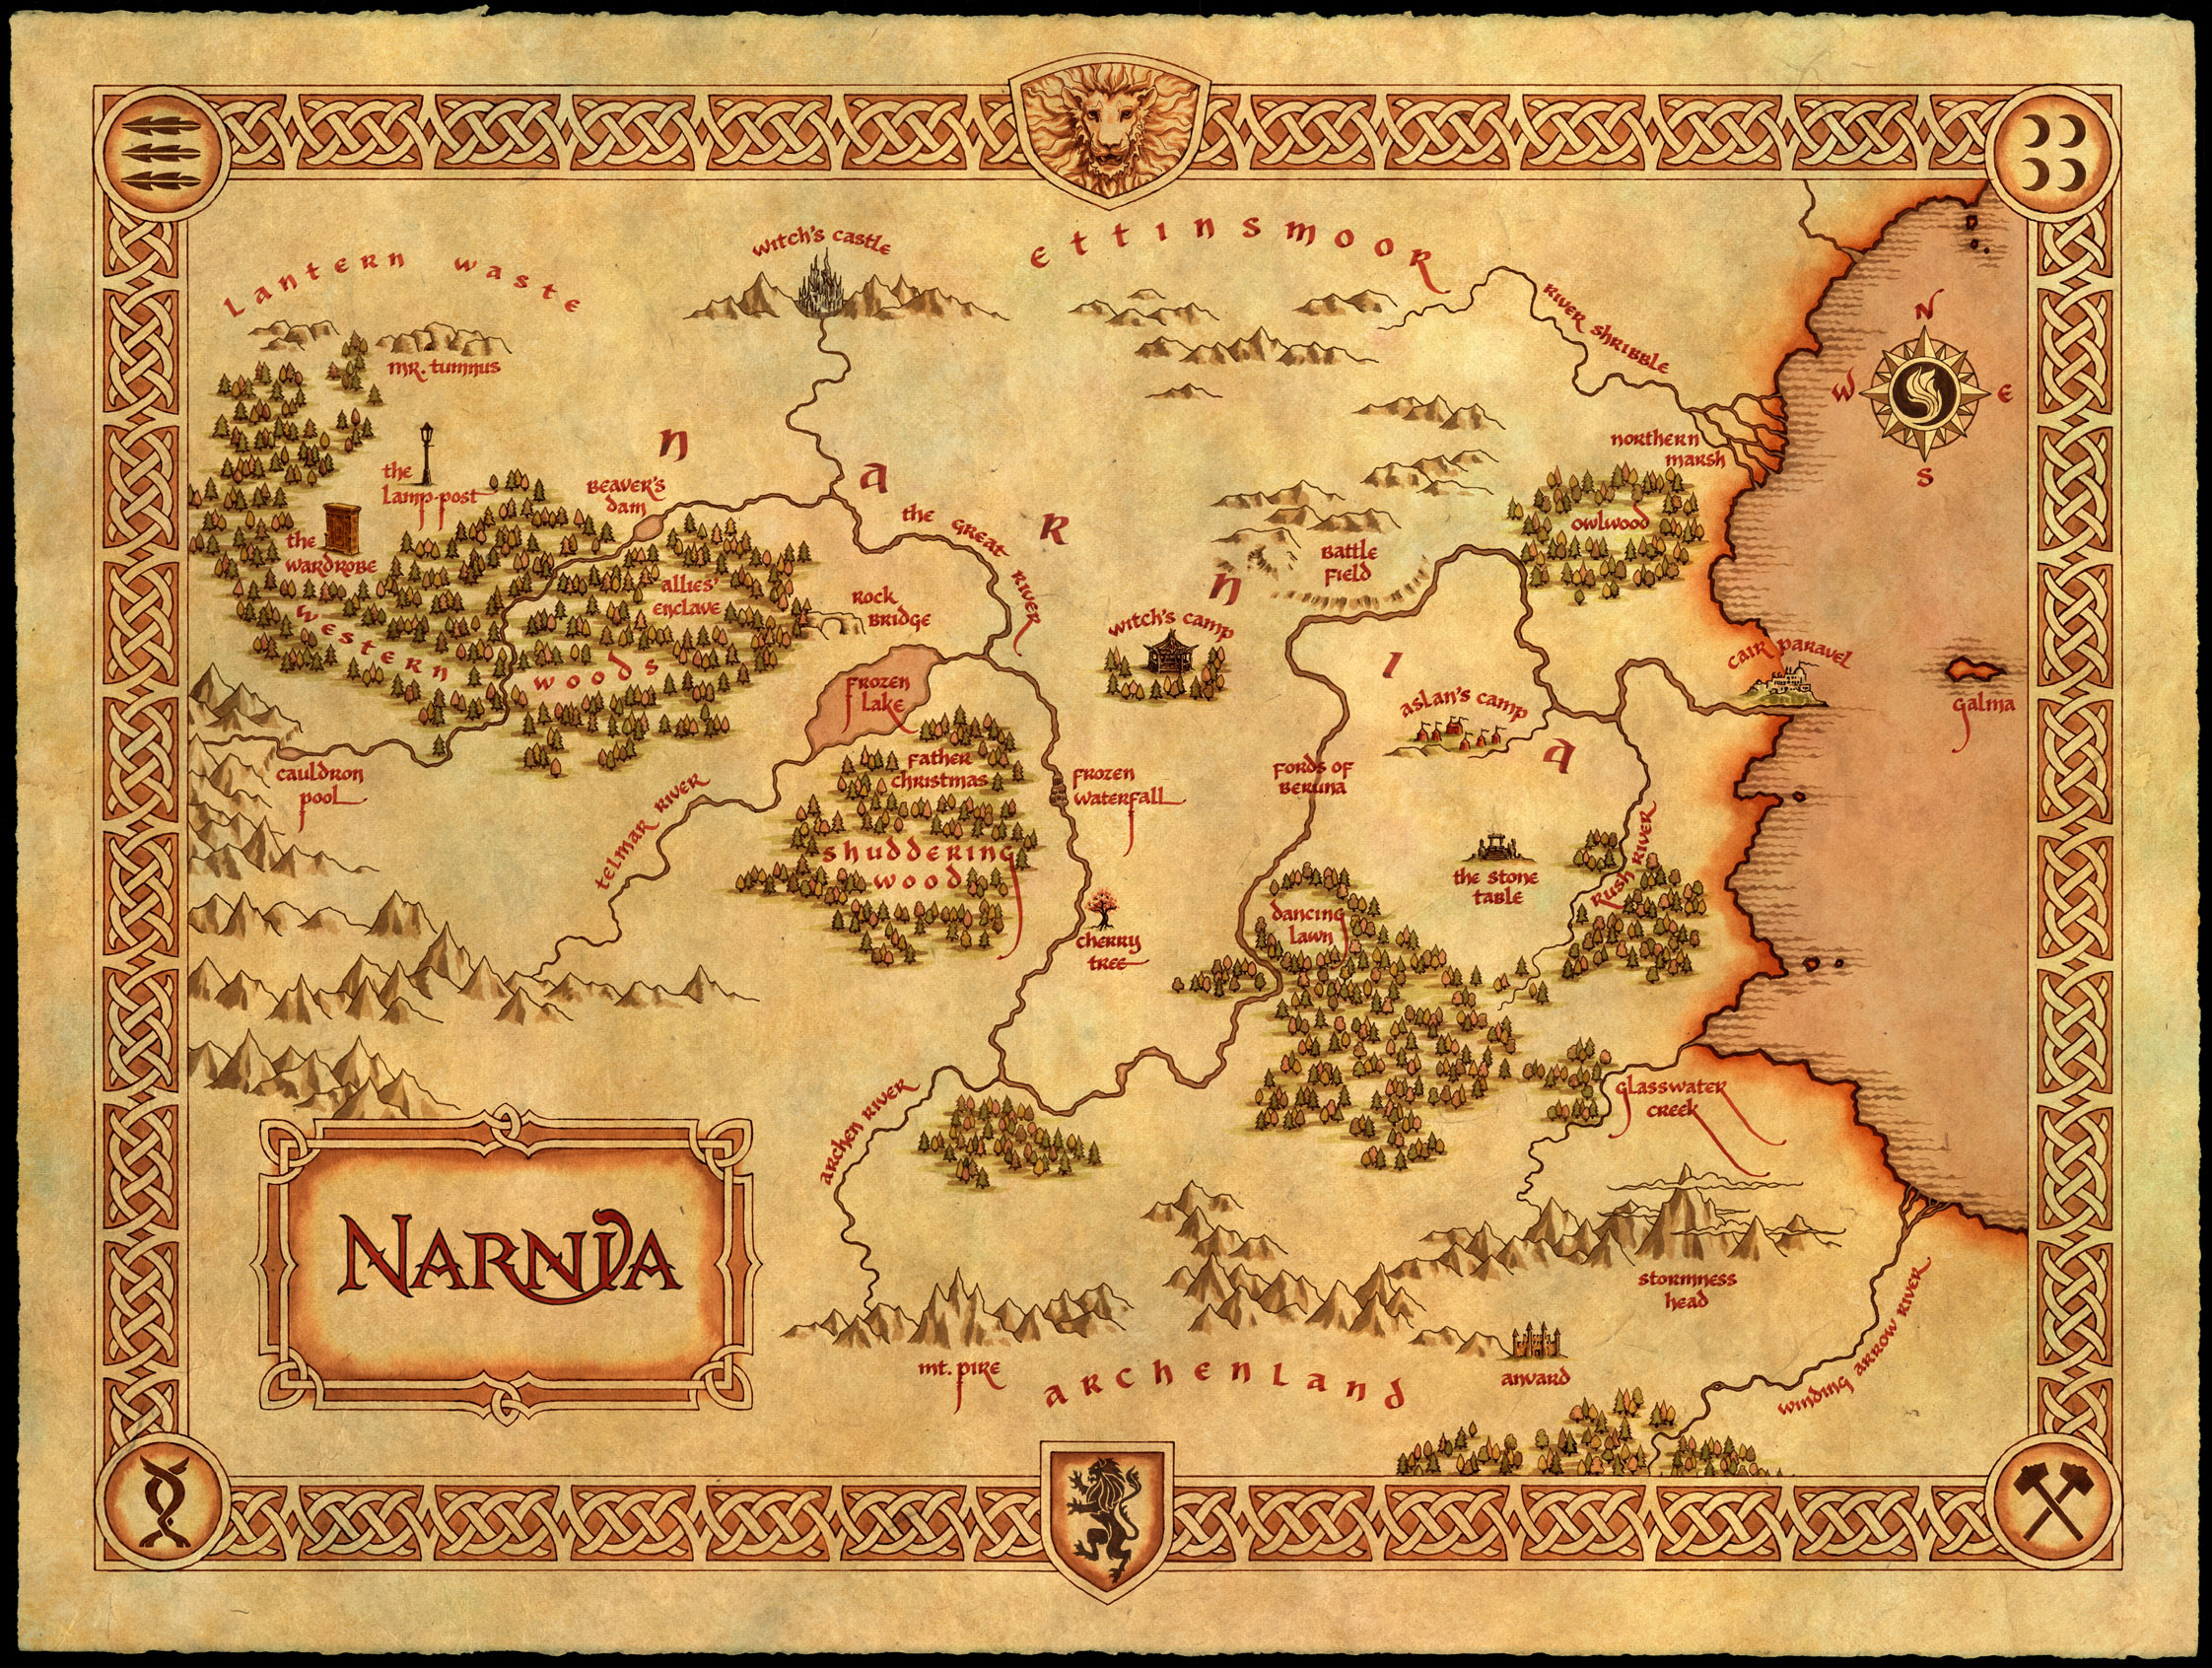 The map of narnia click map for full size